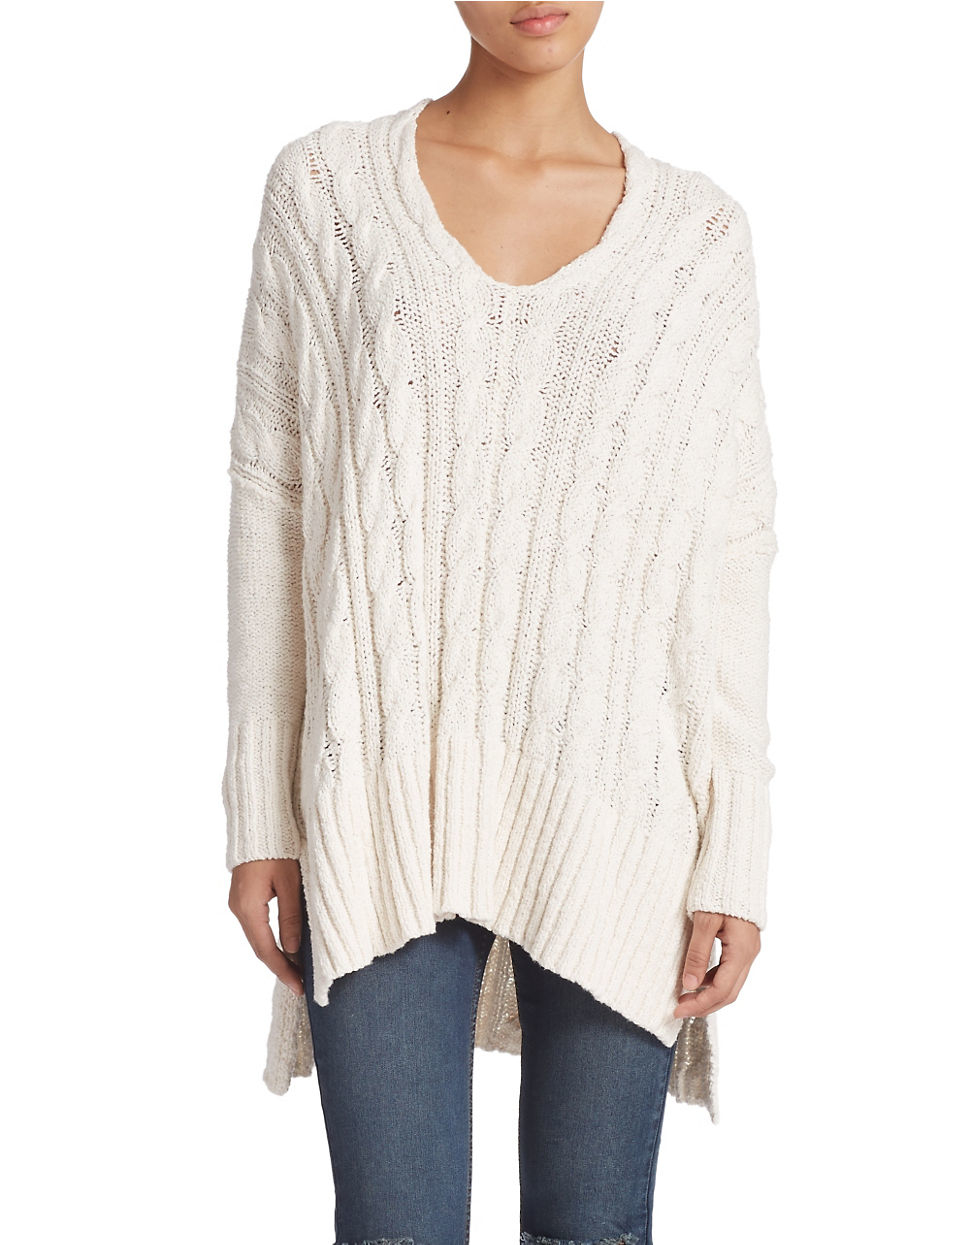 Lyst Free People Oversized Cable Knit Sweater In White